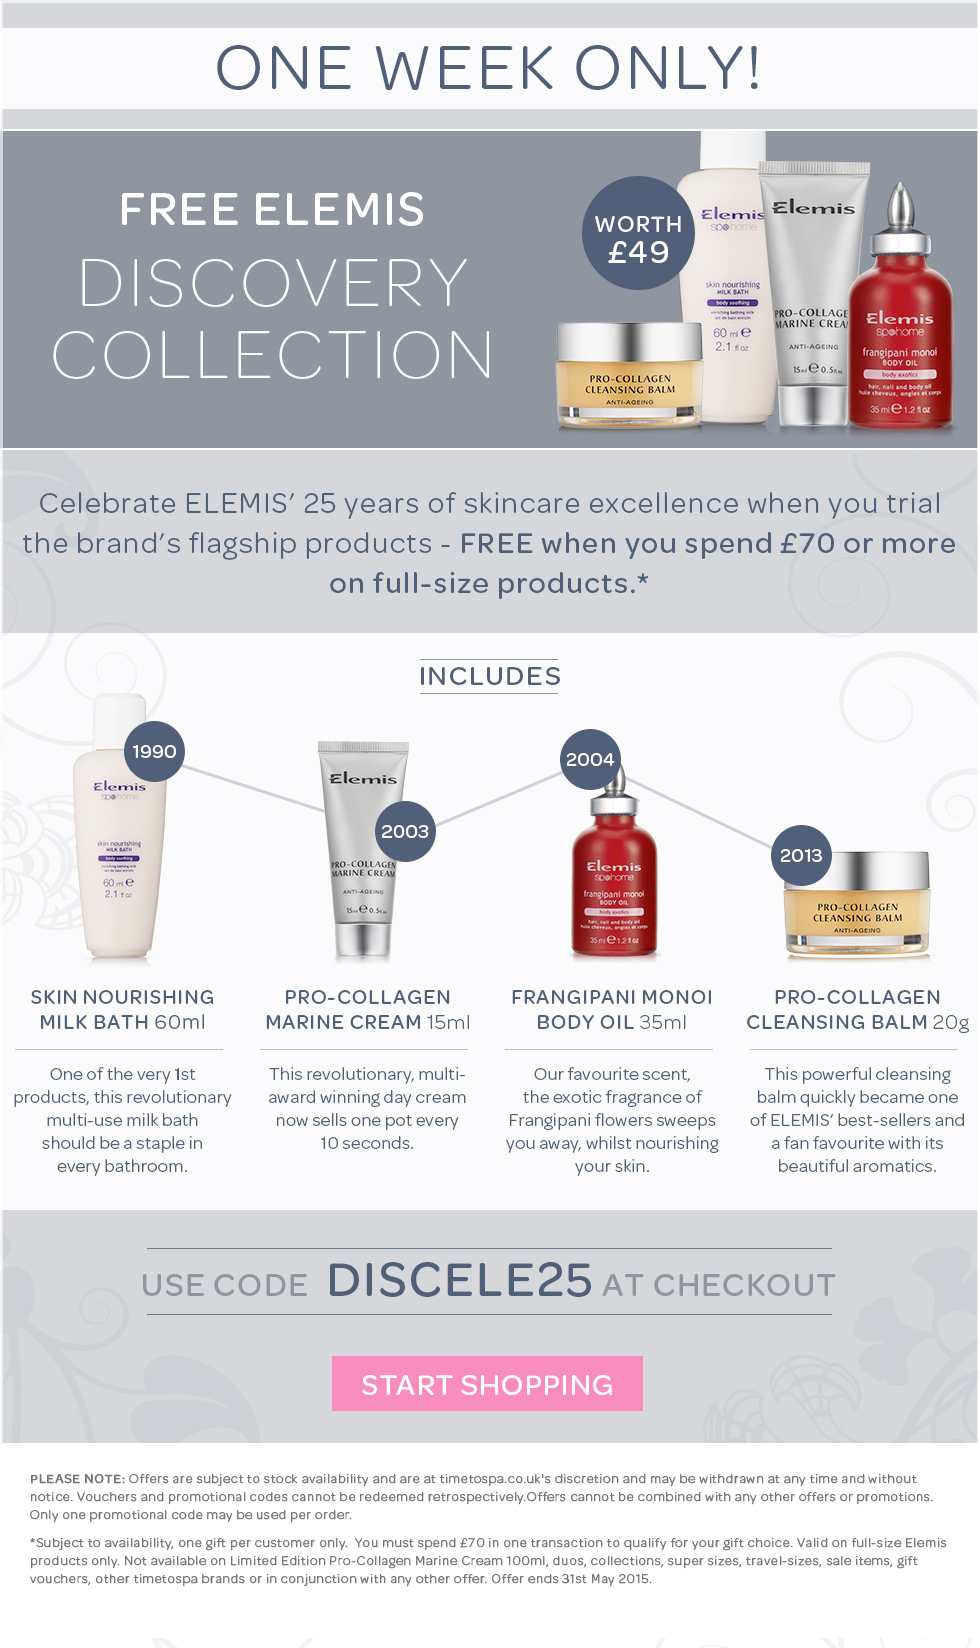 Free ELEMIS Discovery Collection Worth £49